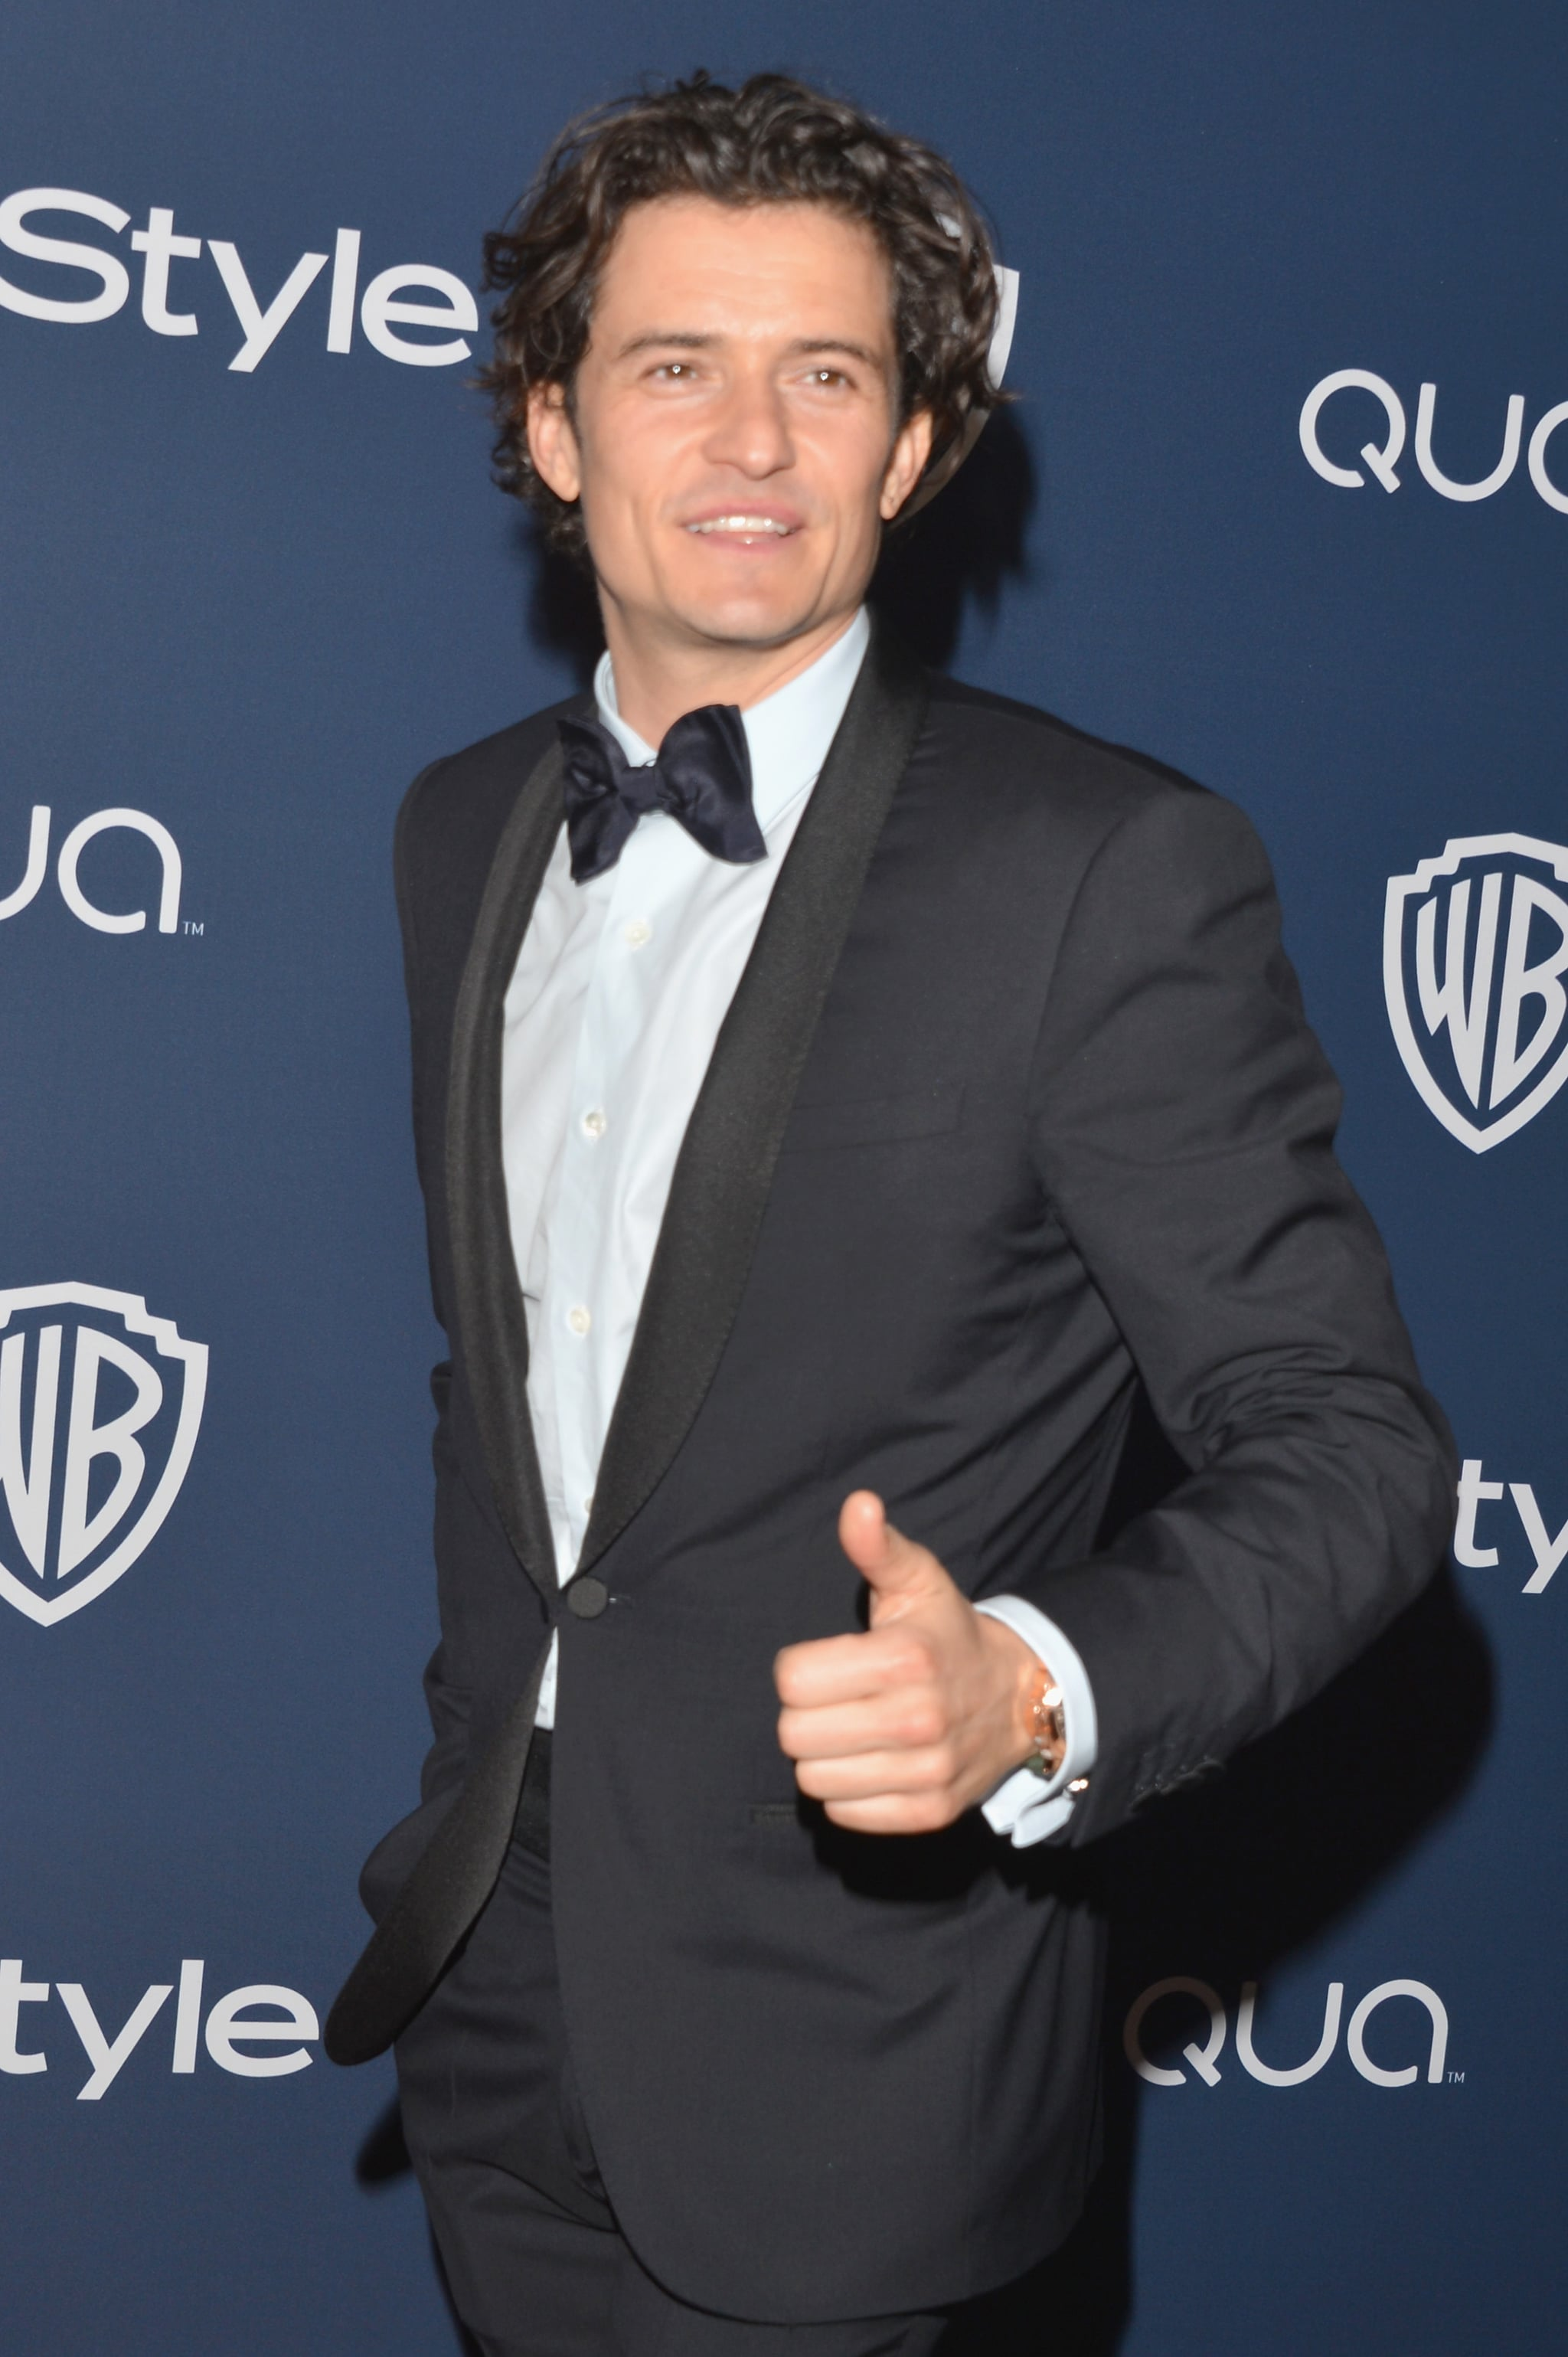 Orlando Bloom gave a thumbs-up on his way into the soiree.